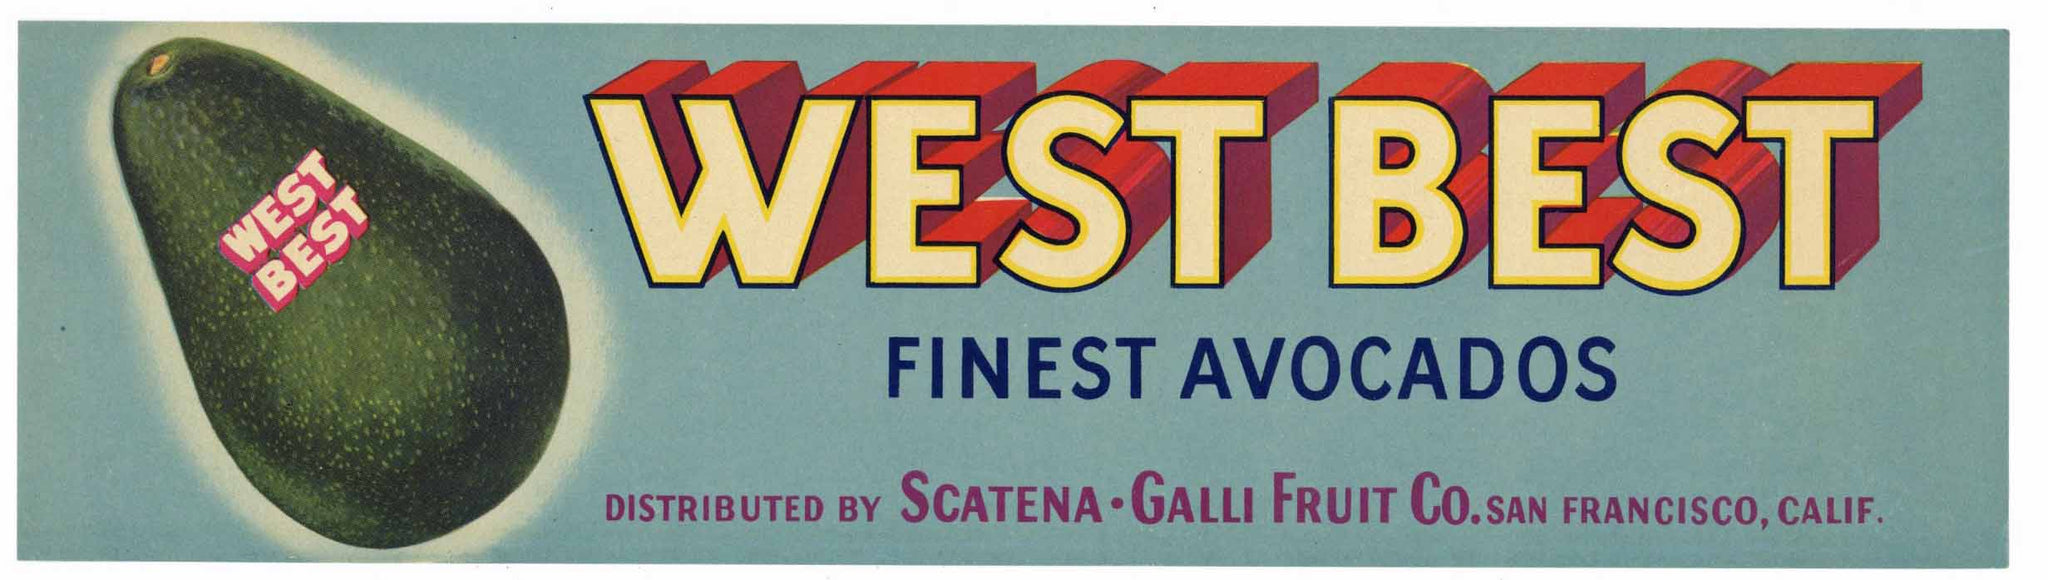 West Best Brand Vintage Avocado Crate Label